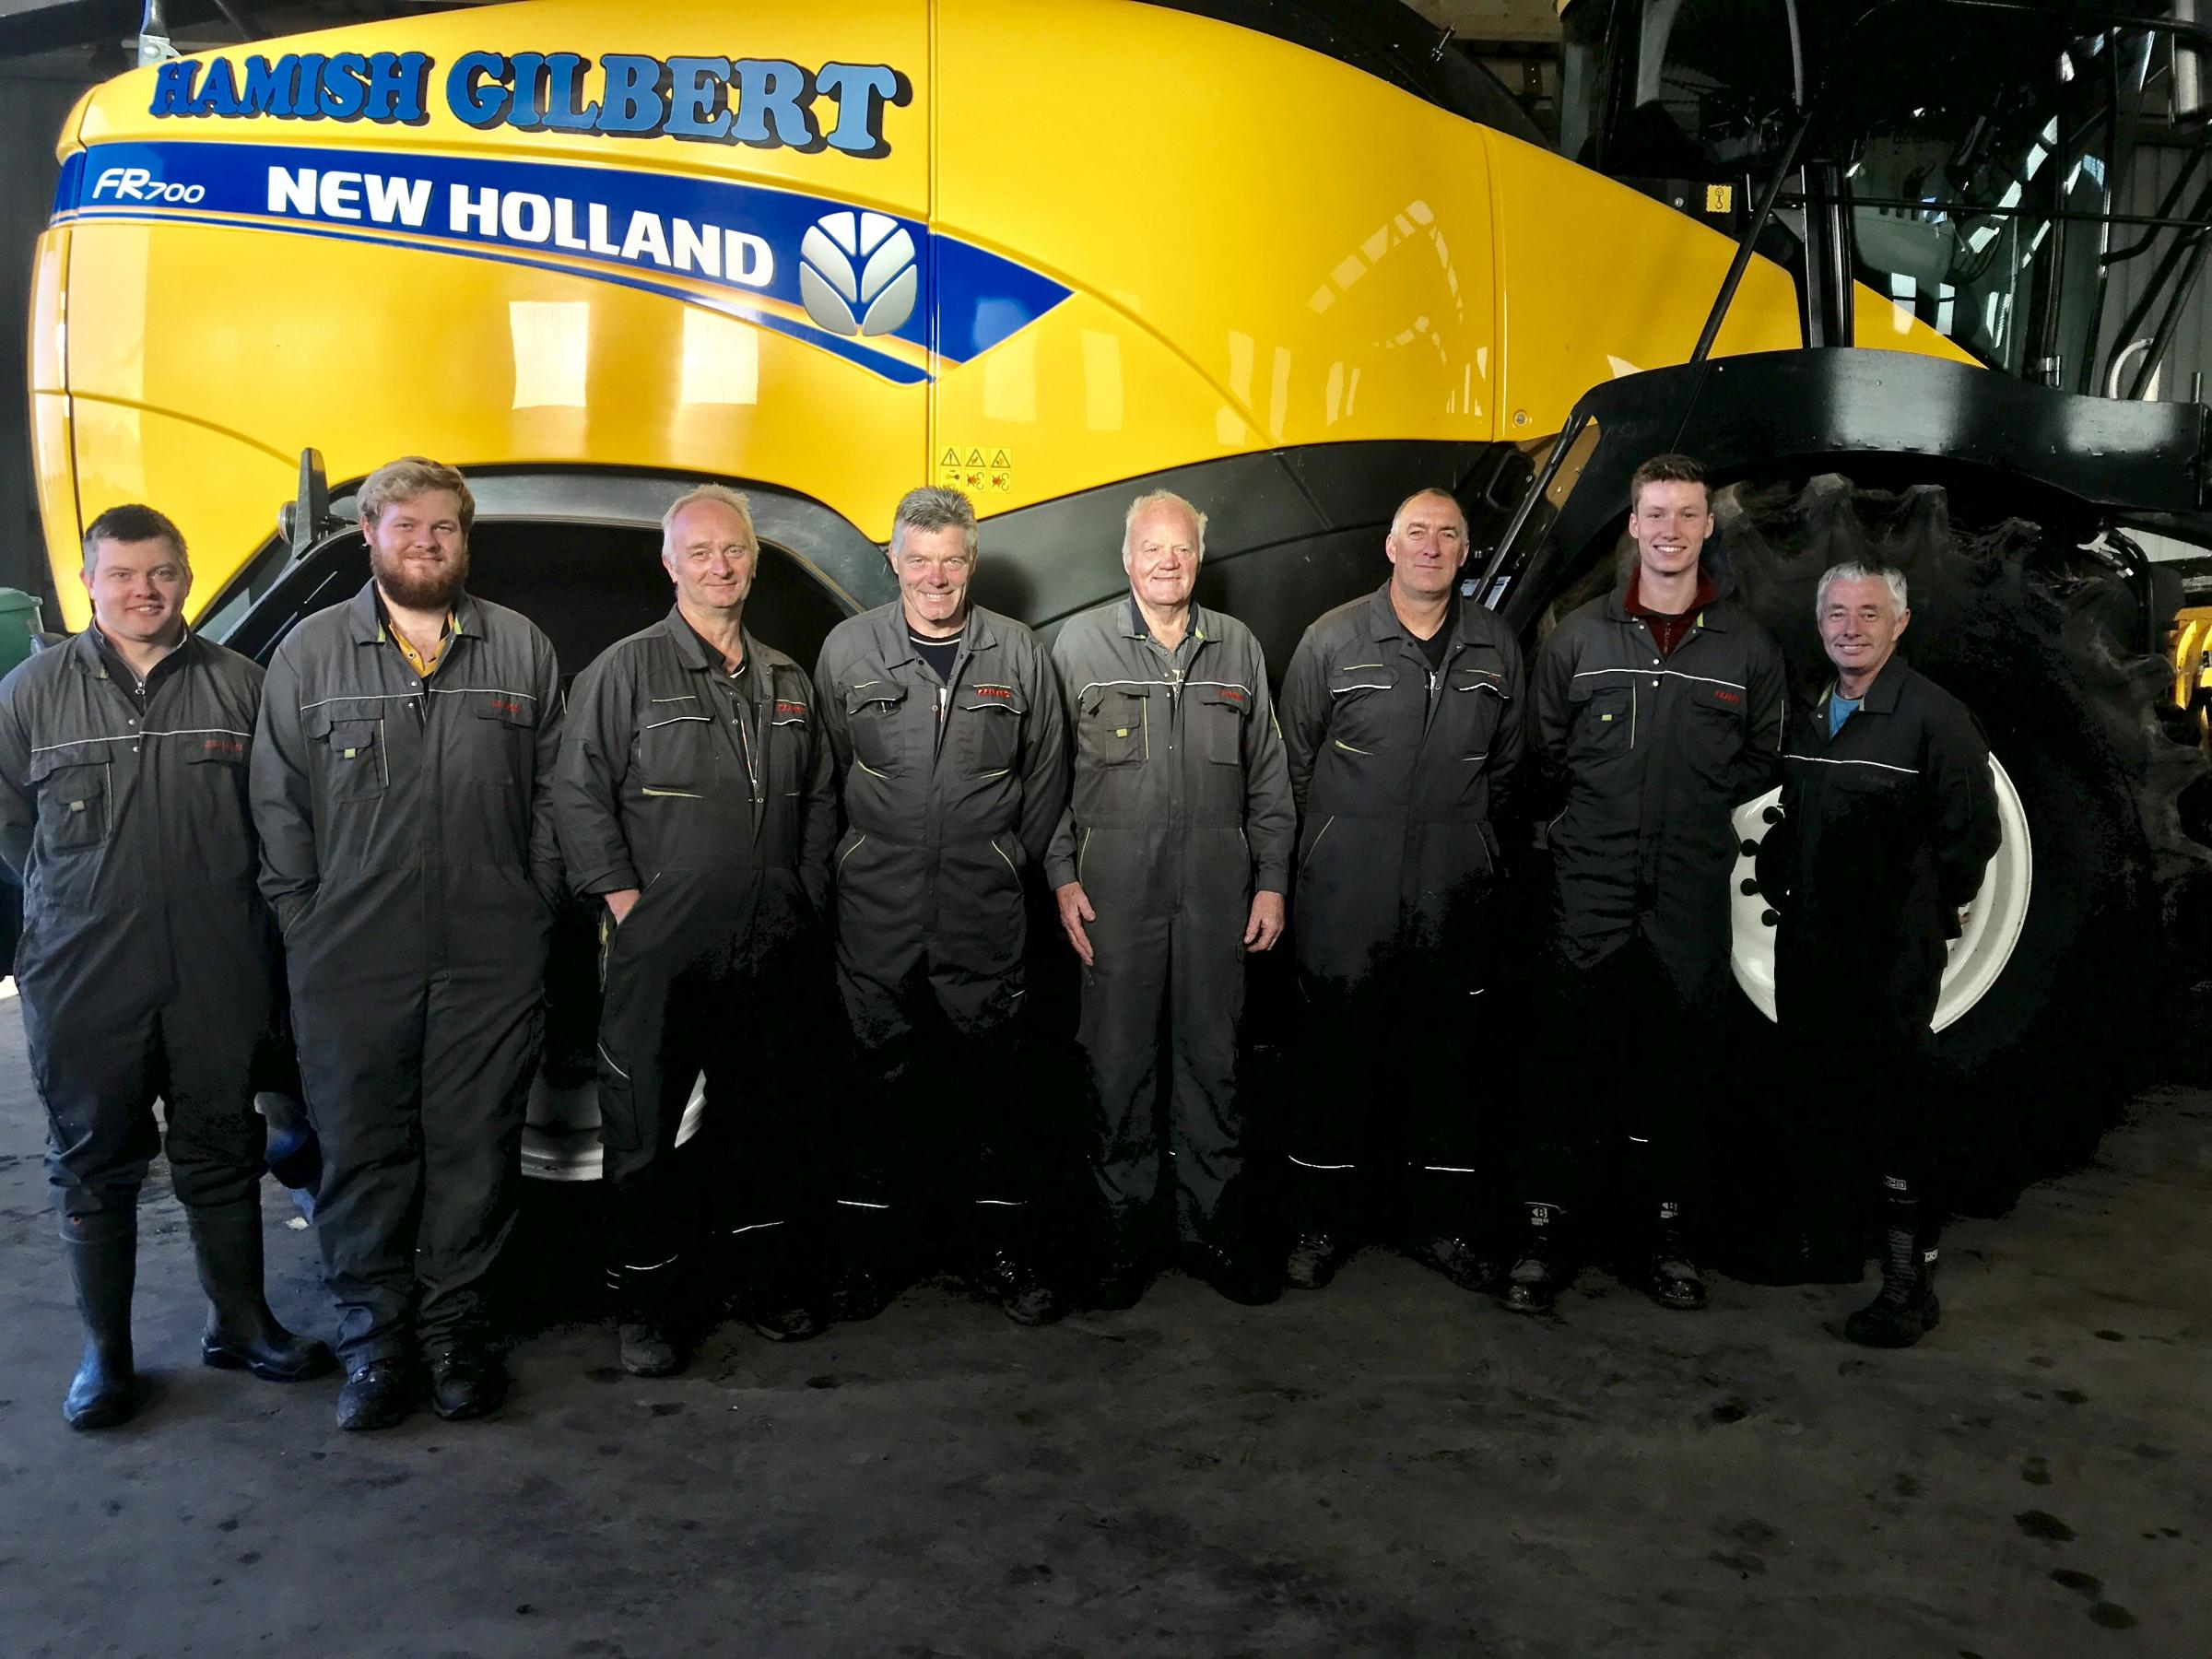 SOME OF the team, from left to right: Andrew Mackie, Matthew McConnell, Andy Stevenson, Hamish Gilber jnr, Hamish Gilber snr, Andrew Allan, Matthew Gilliland and Stewart Johnstone